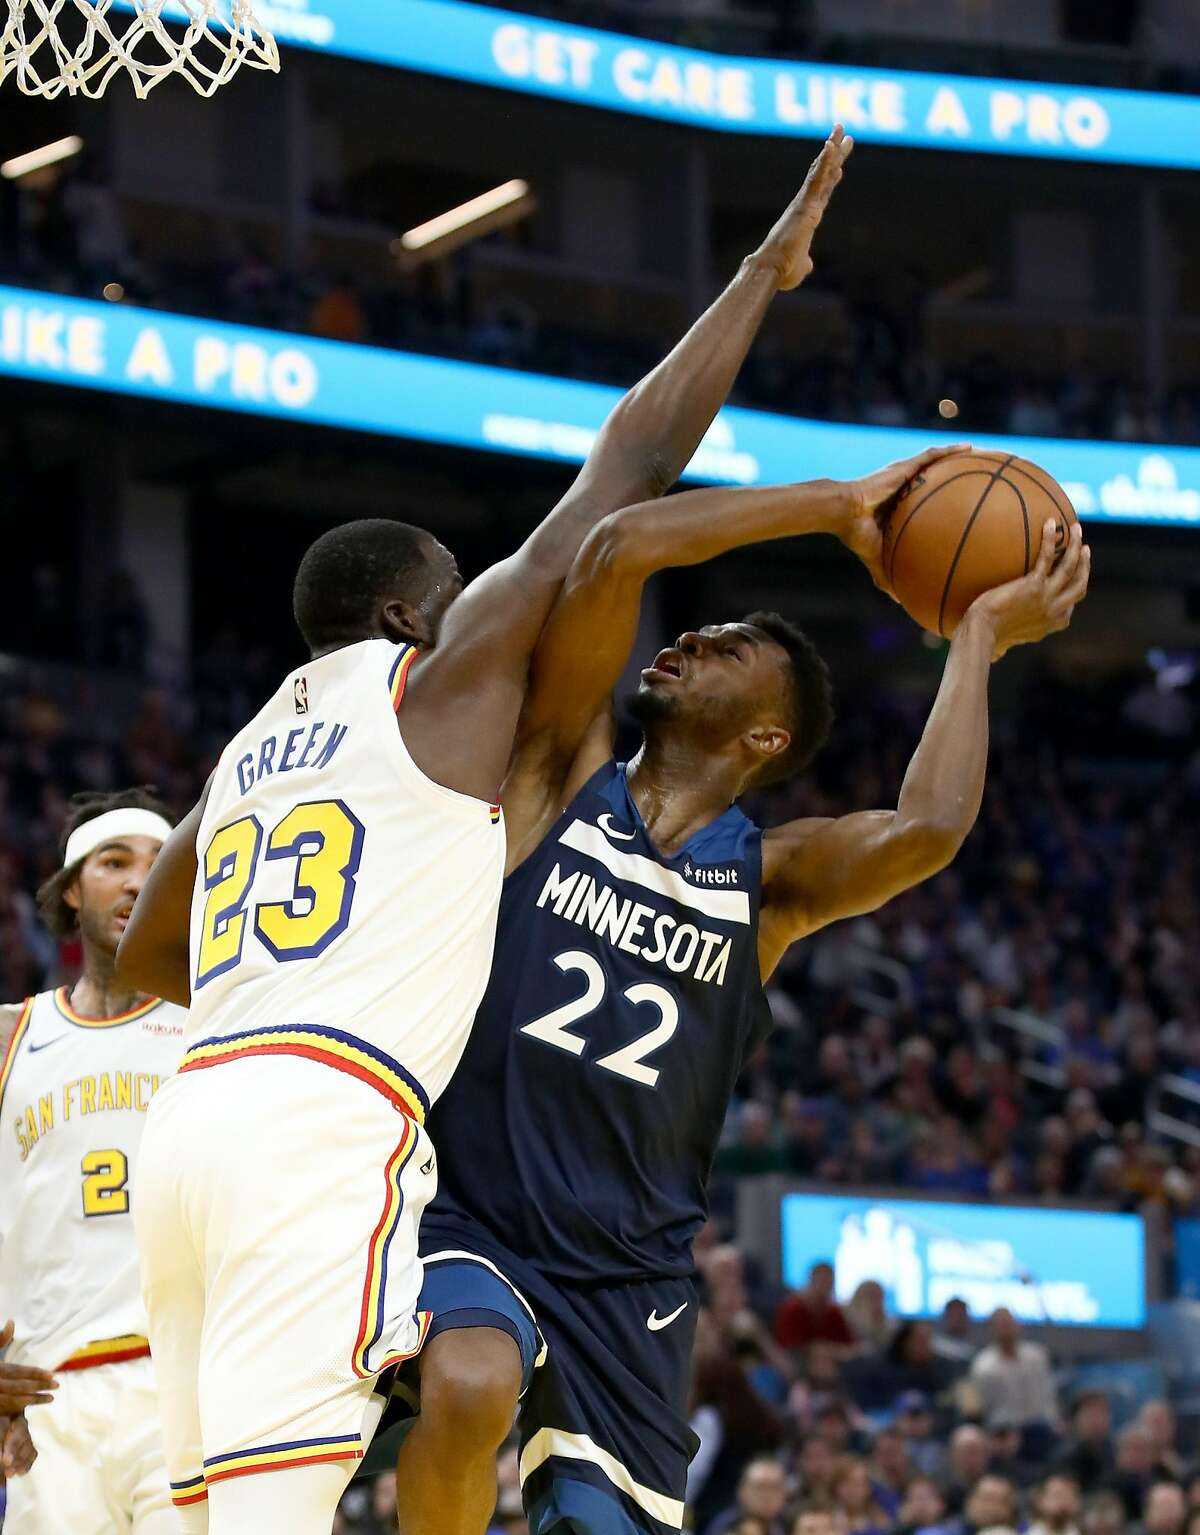 SAN FRANCISCO, CALIFORNIA - DECEMBER 23: Andrew Wiggins #22 of the Minnesota Timberwolves tries to shoot over Draymond Green #23 of the Golden State Warriors at Chase Center on December 23, 2019 in San Francisco, California. NOTE TO USER: User expressly acknowledges and agrees that, by downloading and/or using this photograph, user is consenting to the terms and conditions of the Getty Images License Agreement. (Photo by Ezra Shaw/Getty Images)